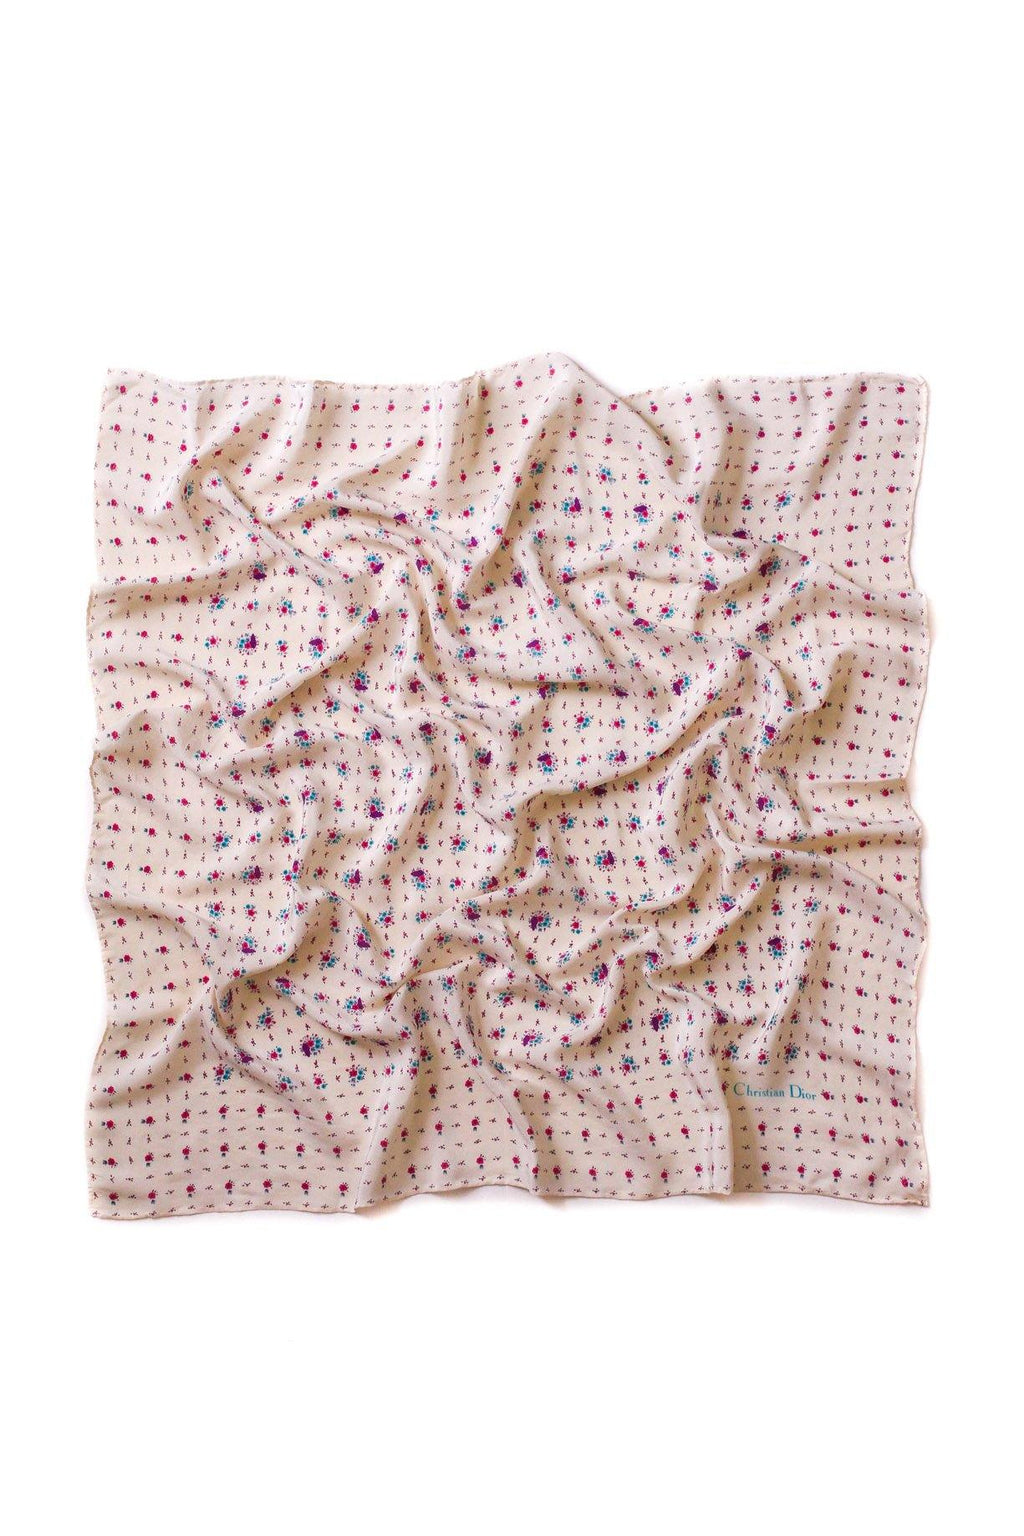 Christian Dior Ditsy Floral Square Scarf